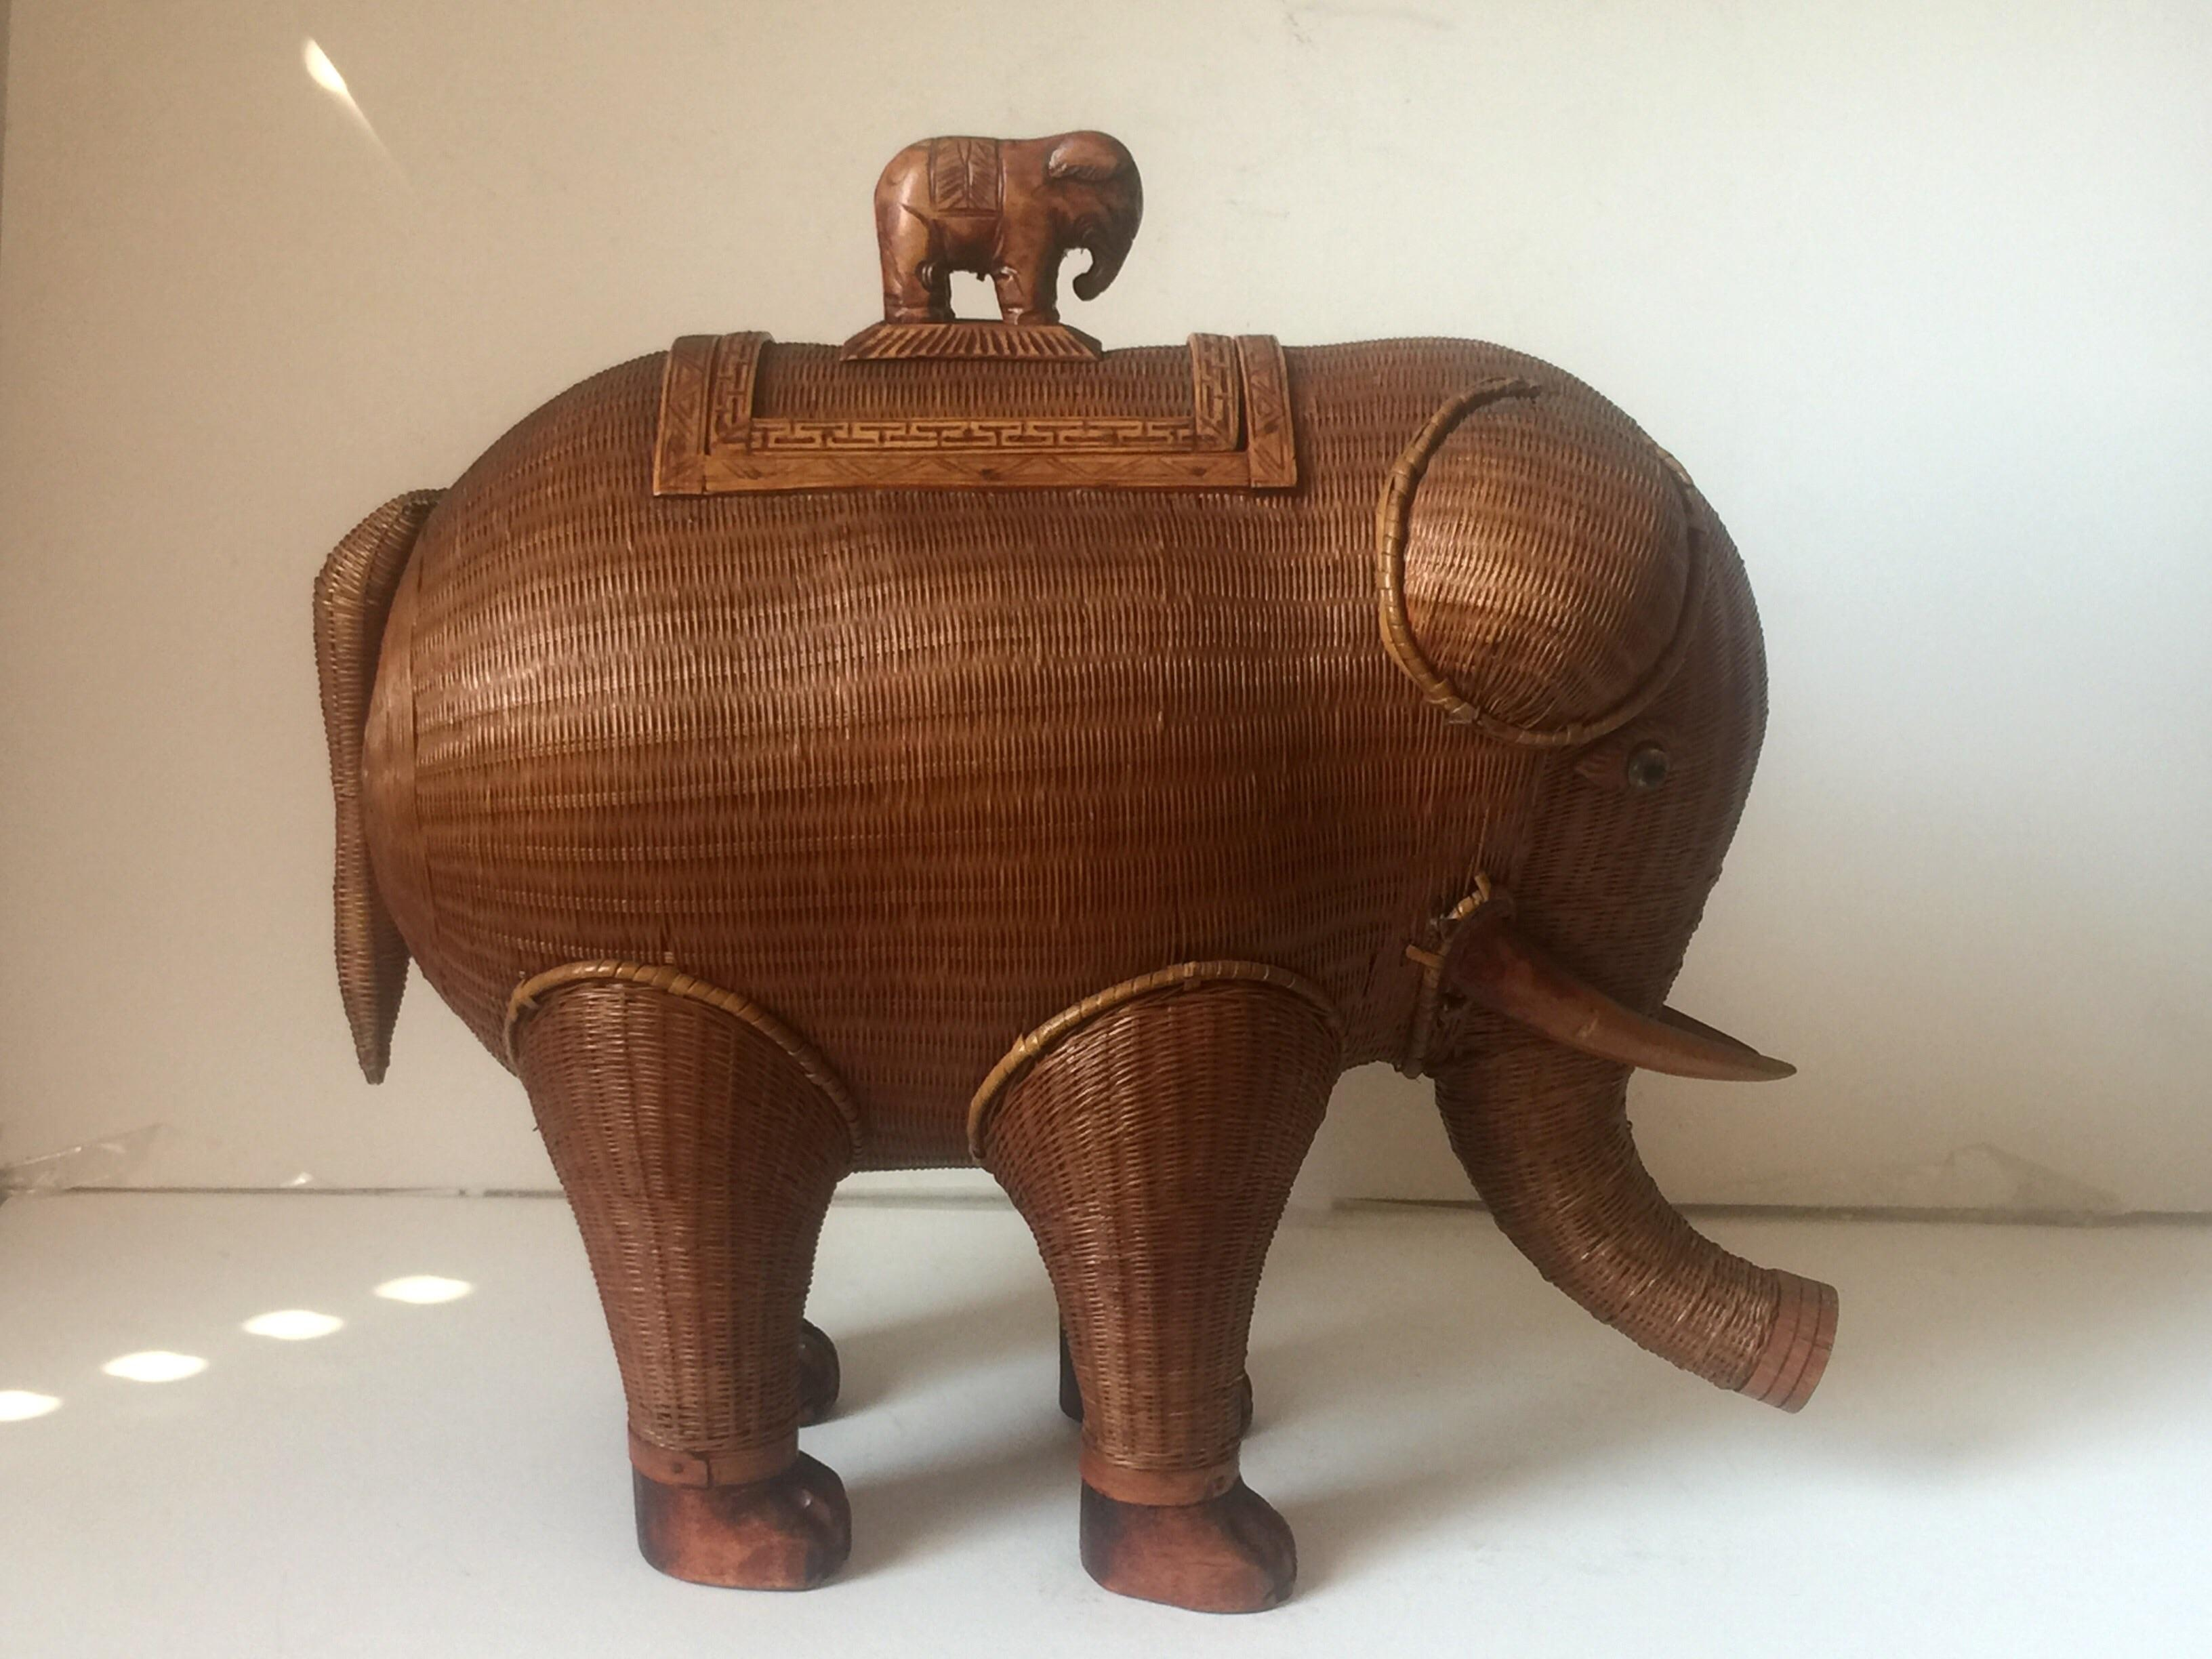 Wicker Elephant Jewelry Box Chairish